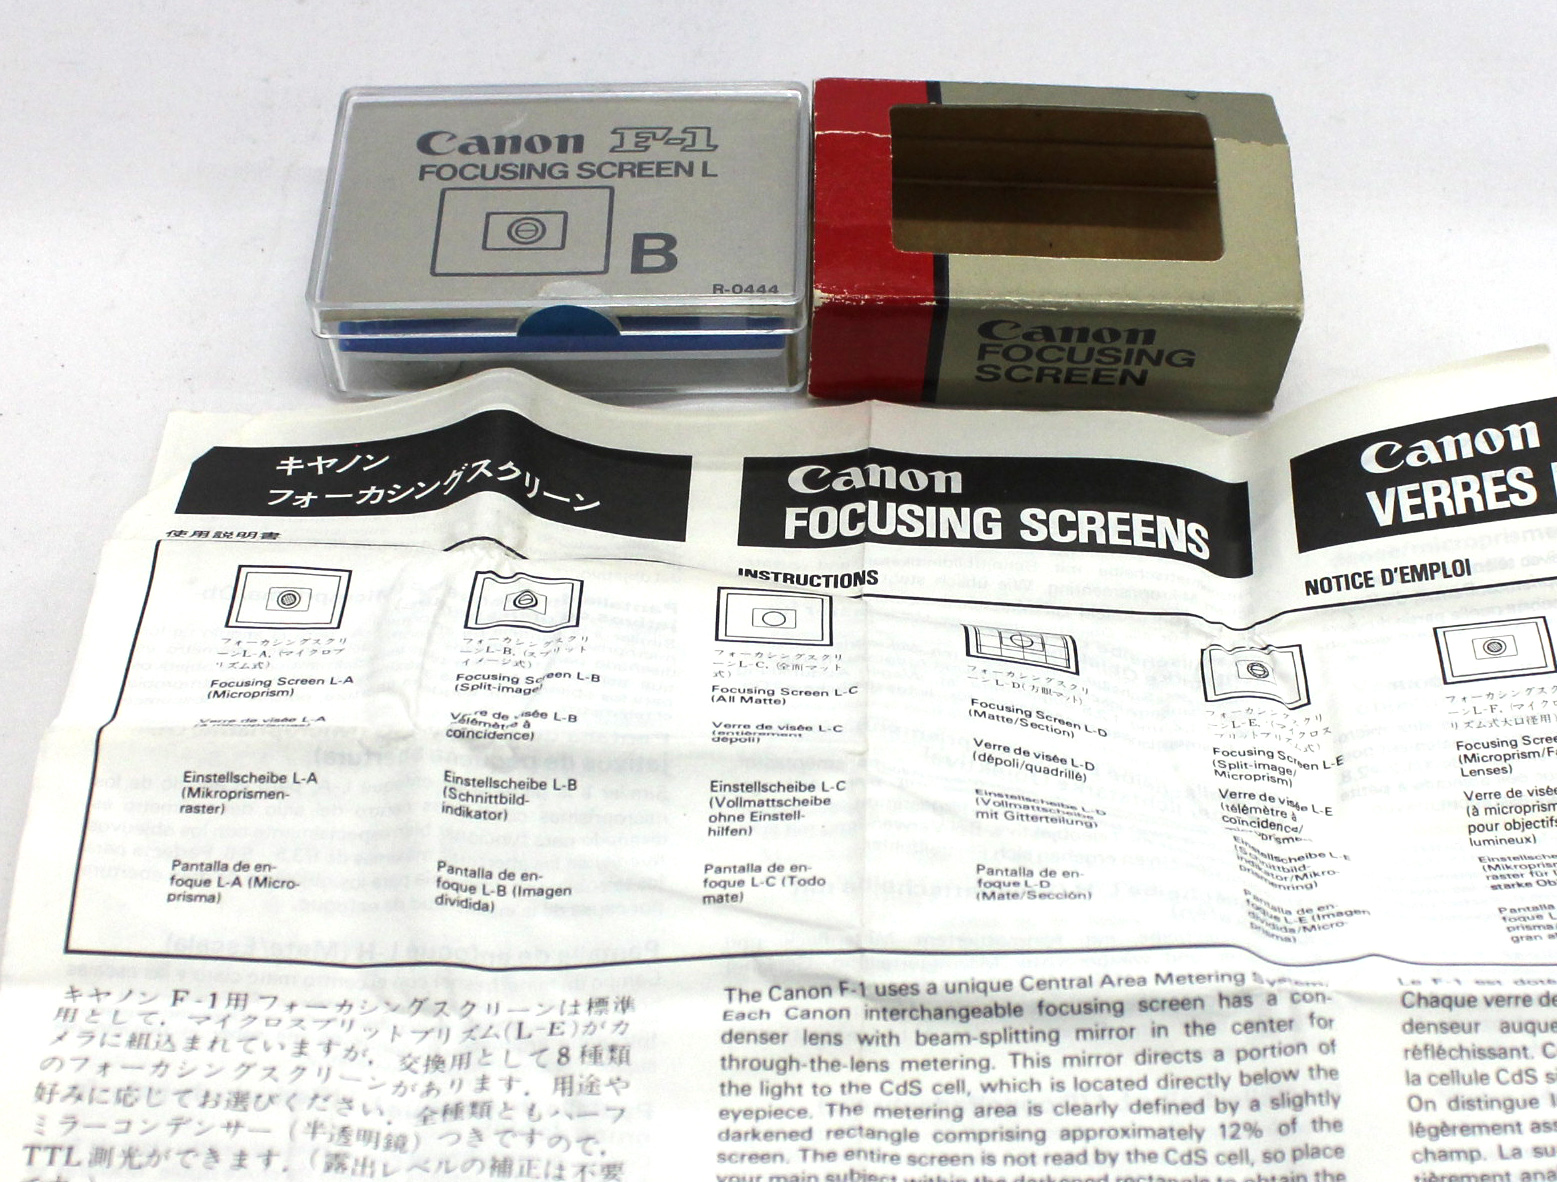 Japan Used Camera Shop | [Excellent+++++] Canon Focusing Screen L Type B Split-Image for F1 SLR Camera from Japan